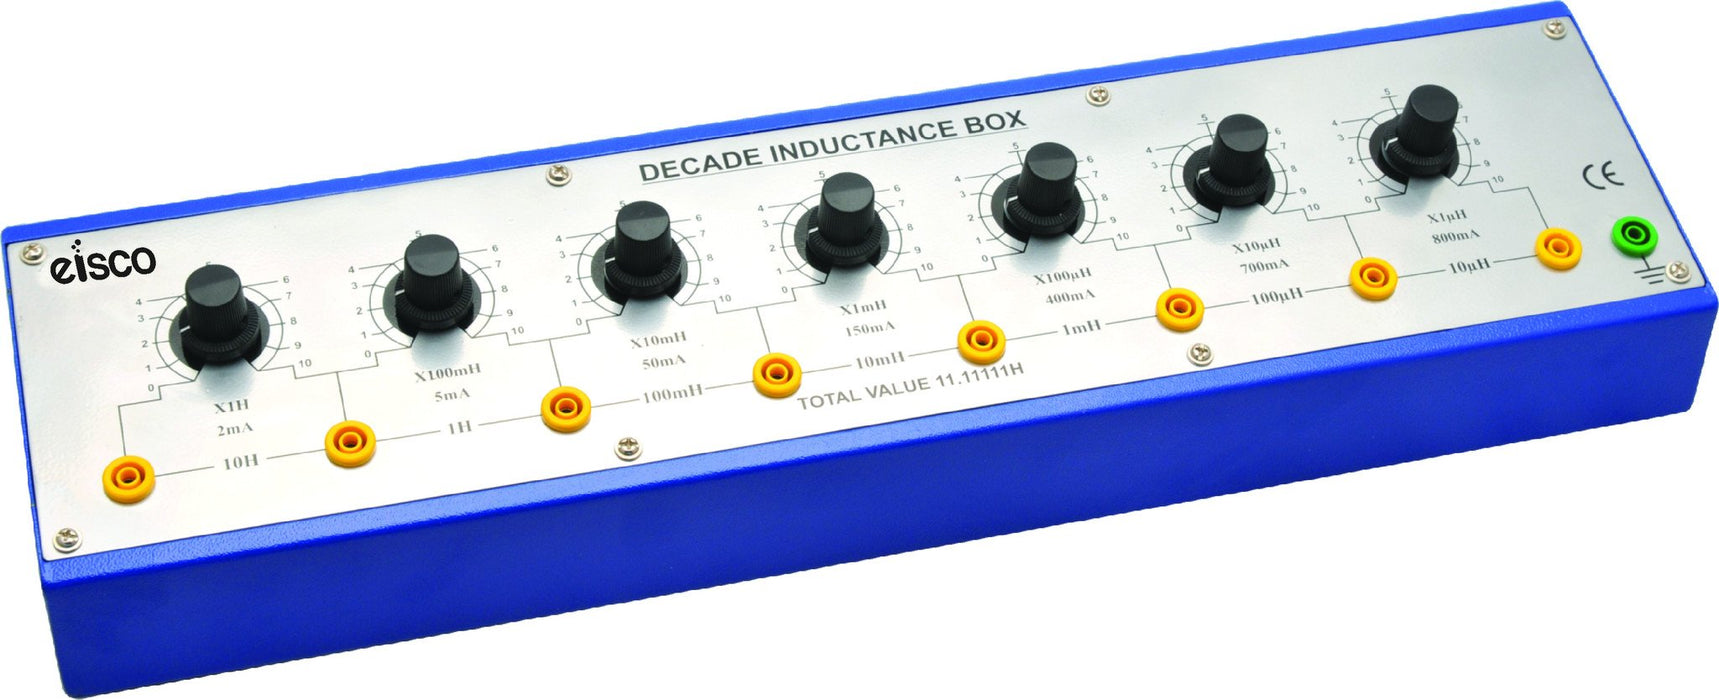 Decade Inductance Box - 7 Decade